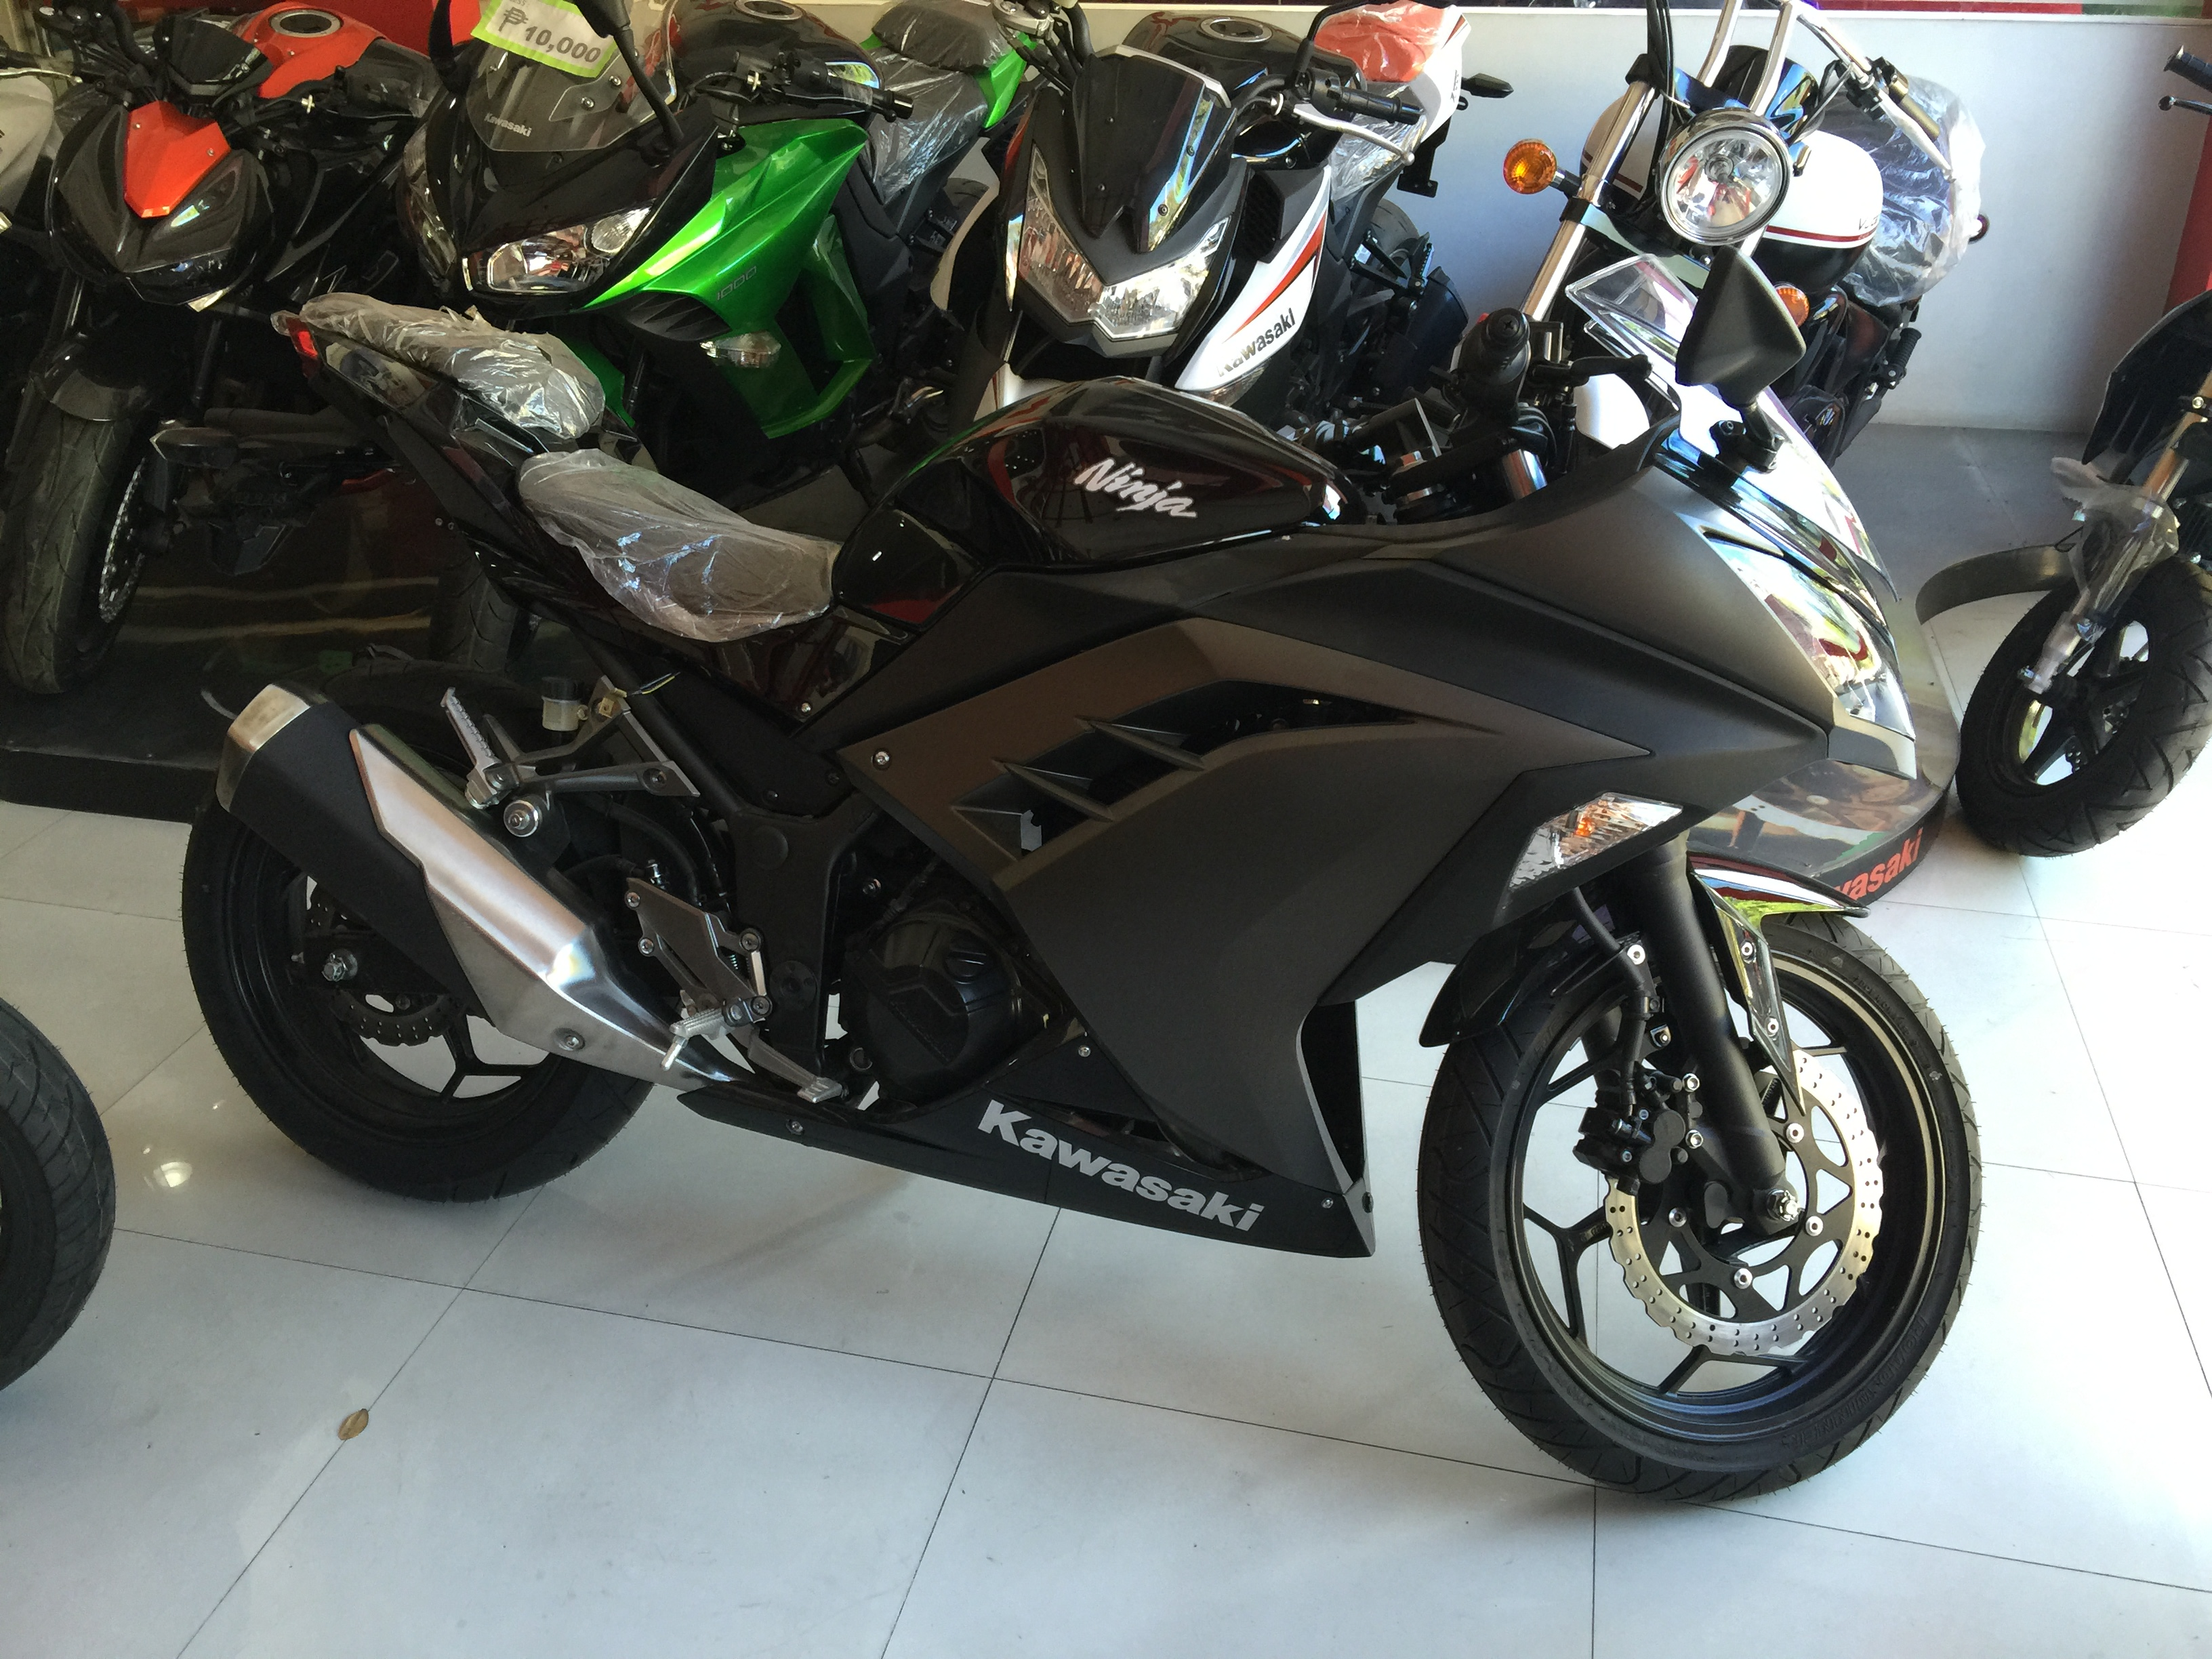 Greeting from the Philippines - Kawasaki Ninja 300 Forum